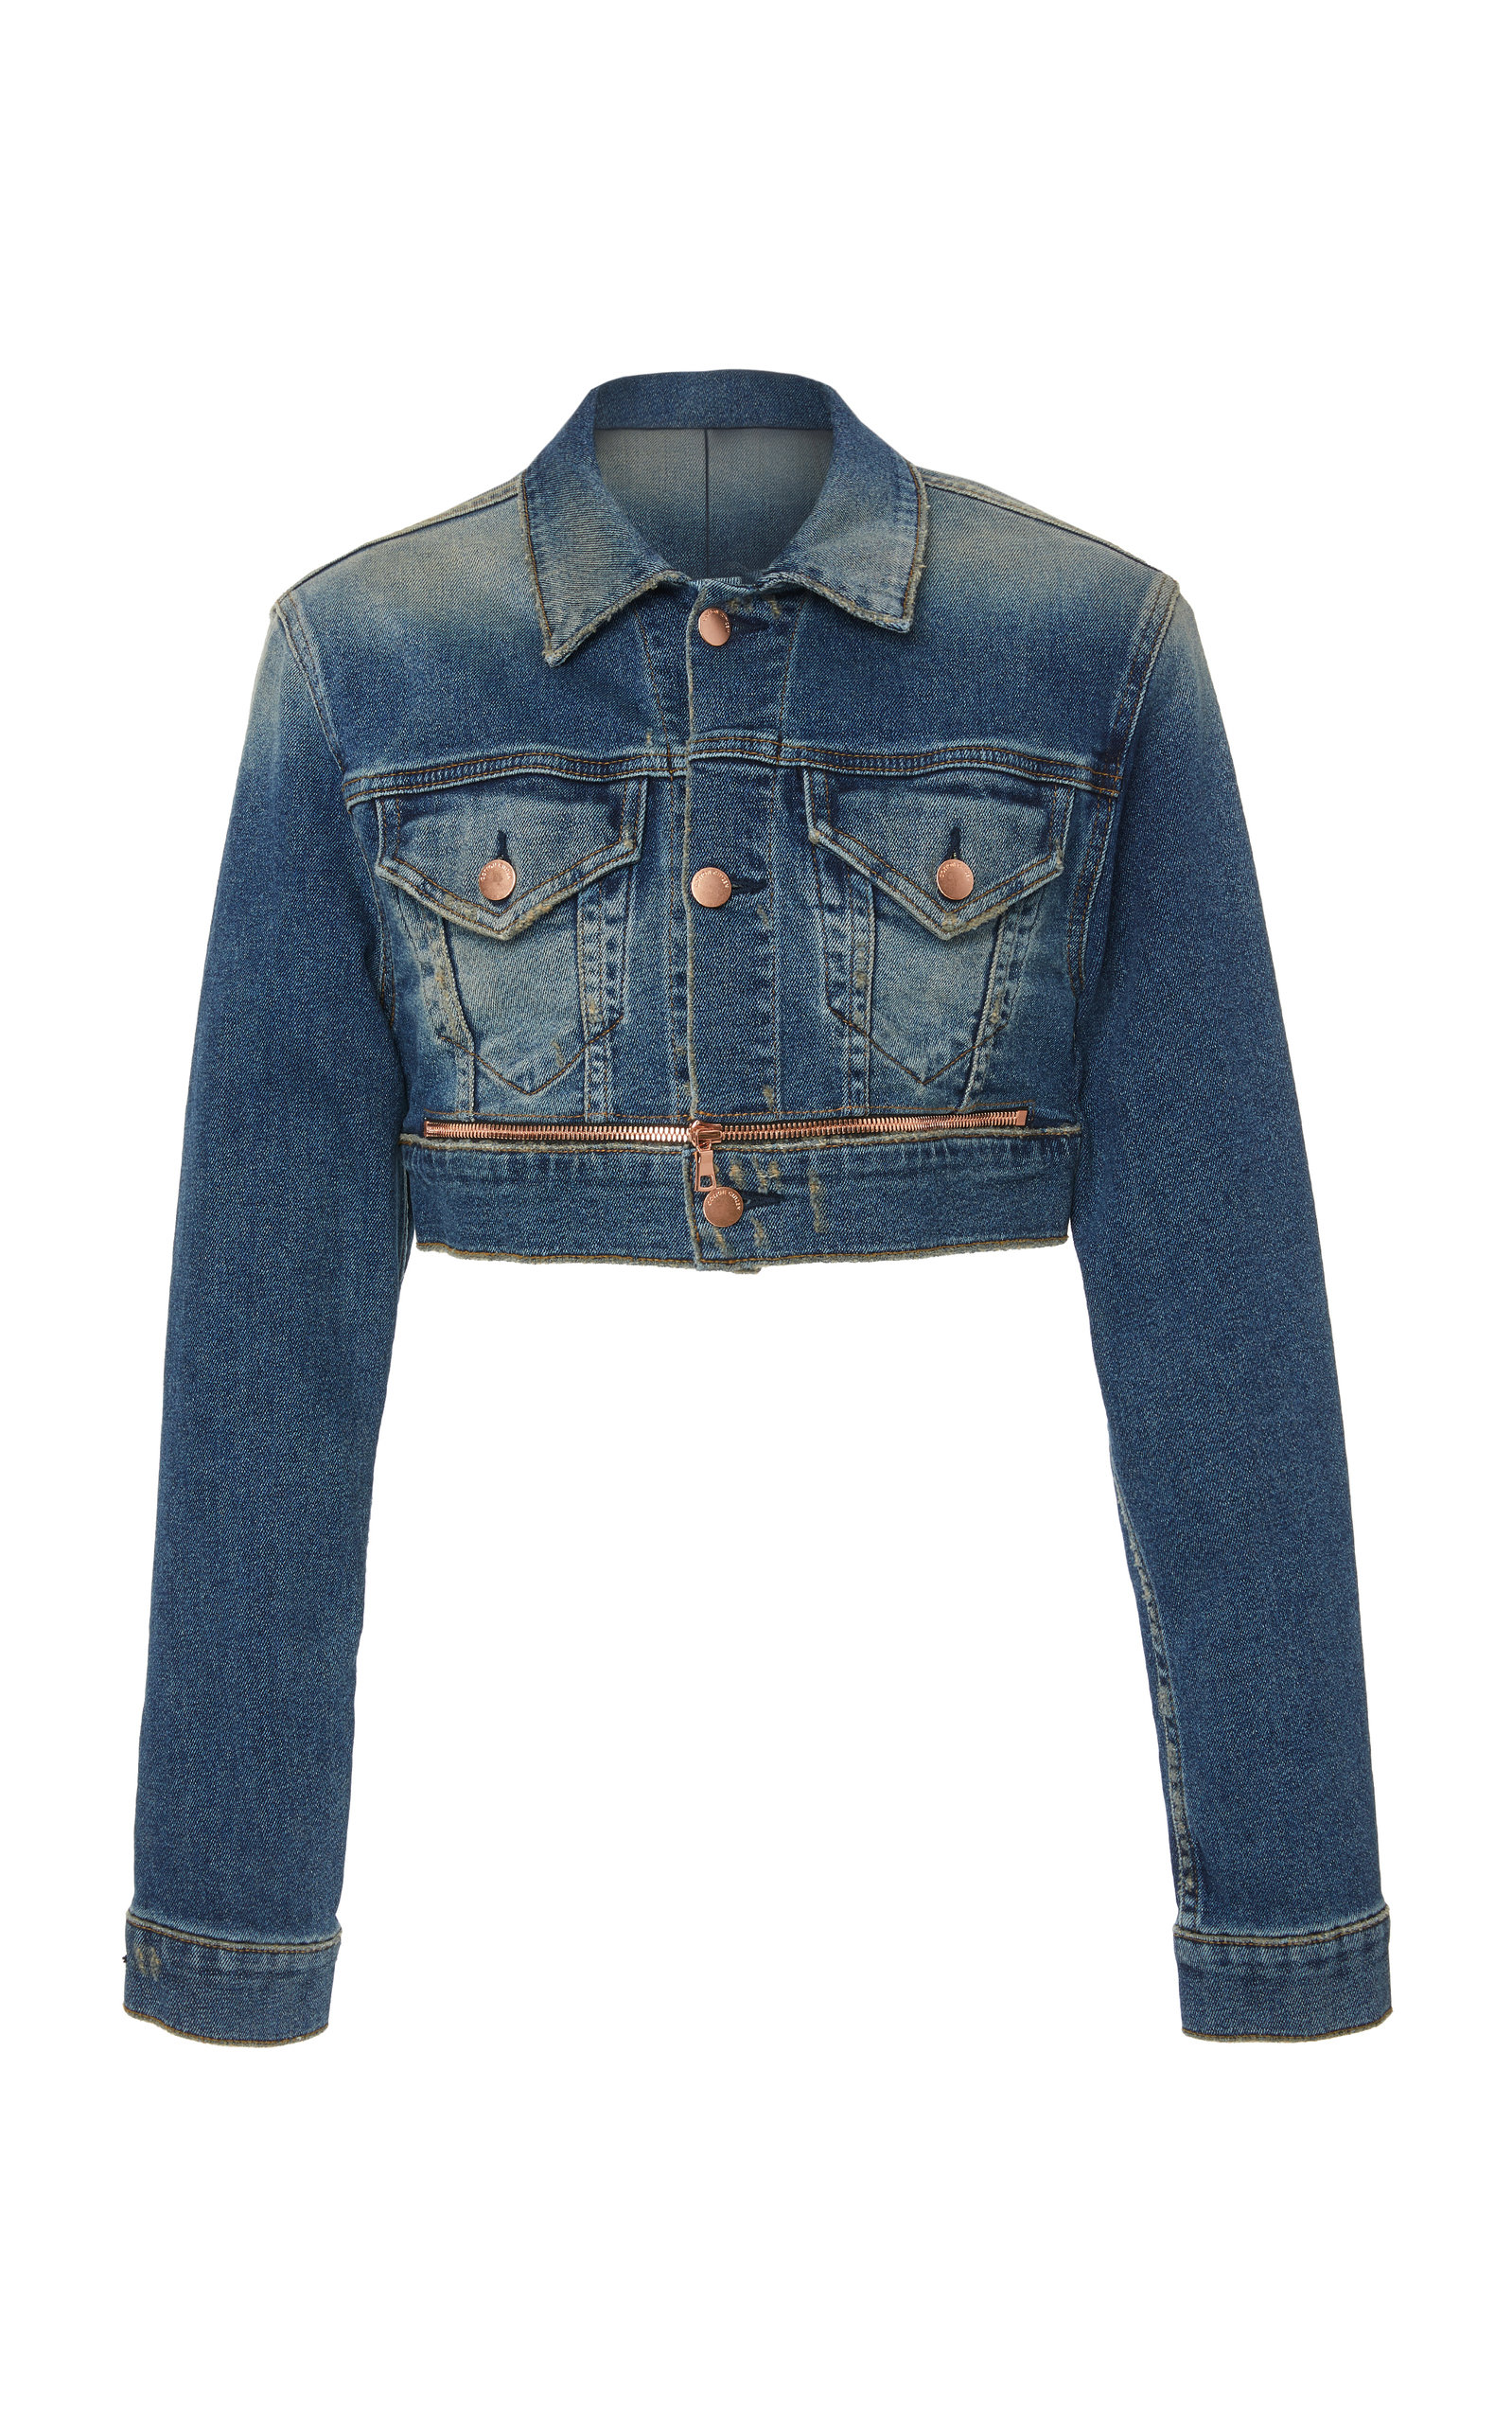 99263764c92c7c Cotton CitizenSuper Crop Denim Jacket. CLOSE. Loading